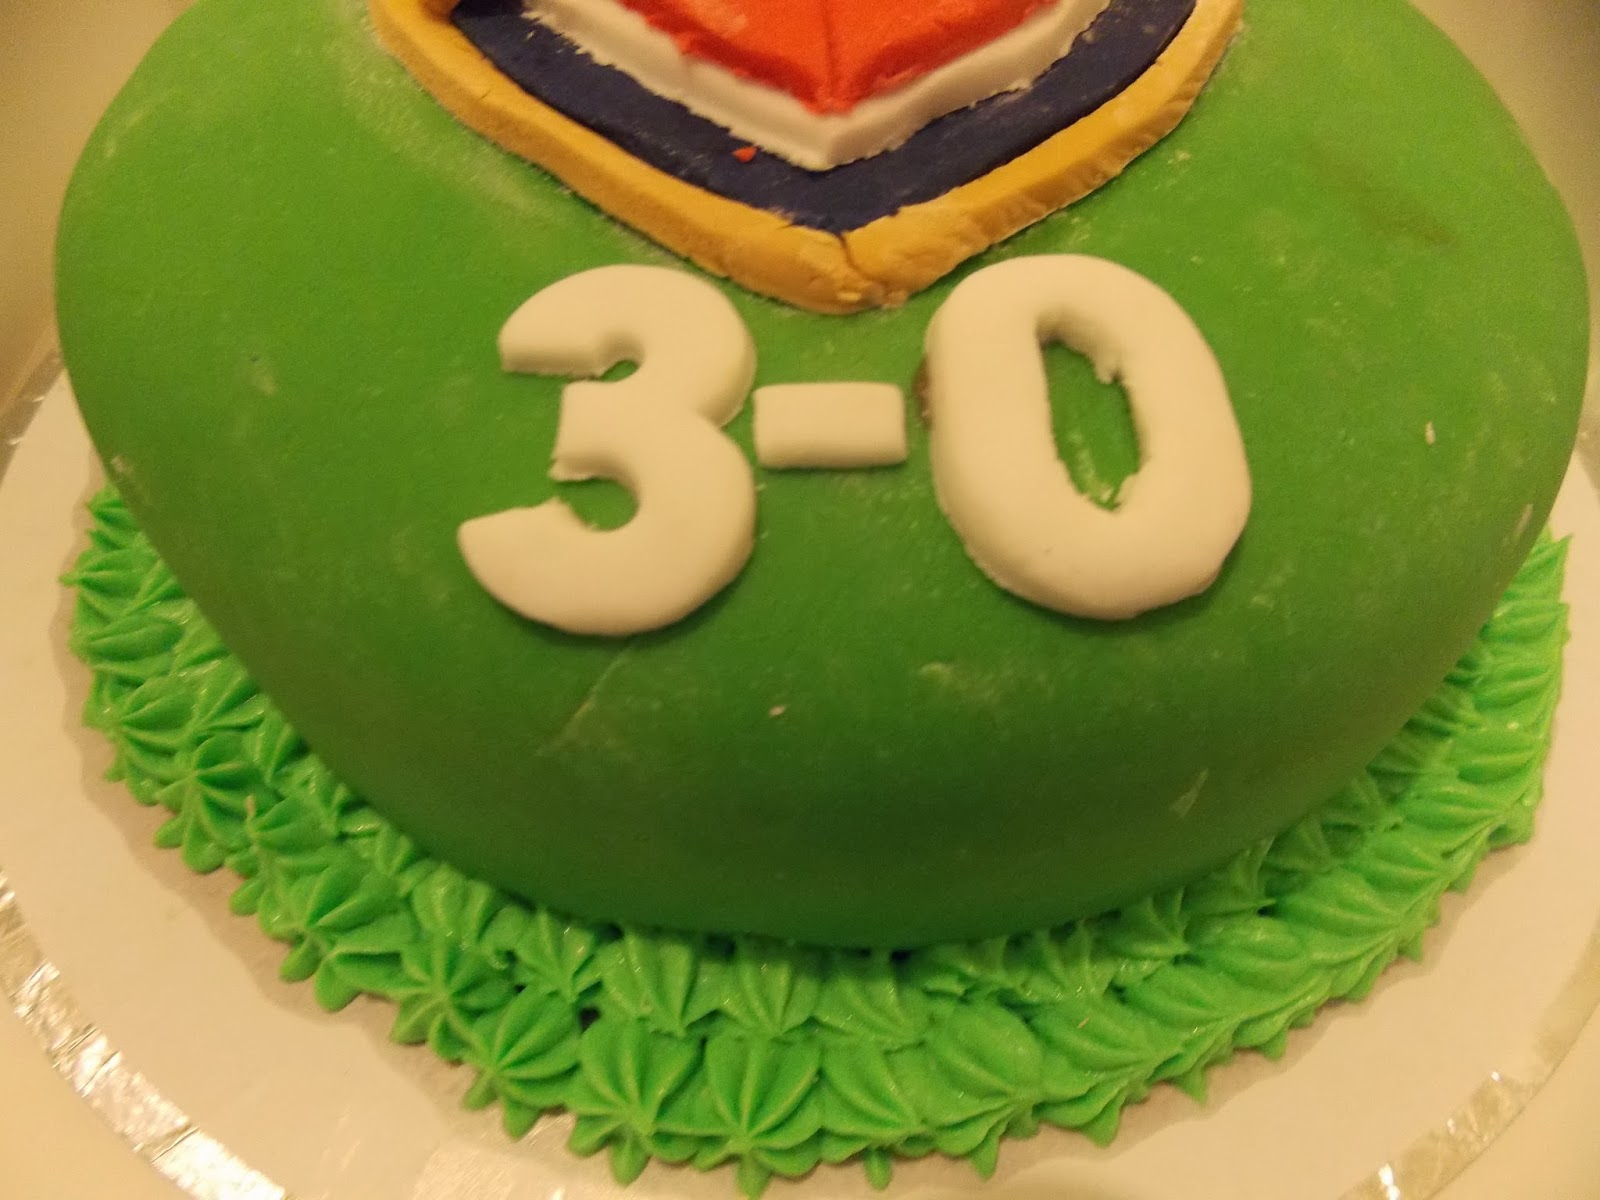 Of A 3 0 Score In Place The Number 30 And Finished Design By Piping Green Butter Icing Around Bottom Cake With Large Star Nozzle